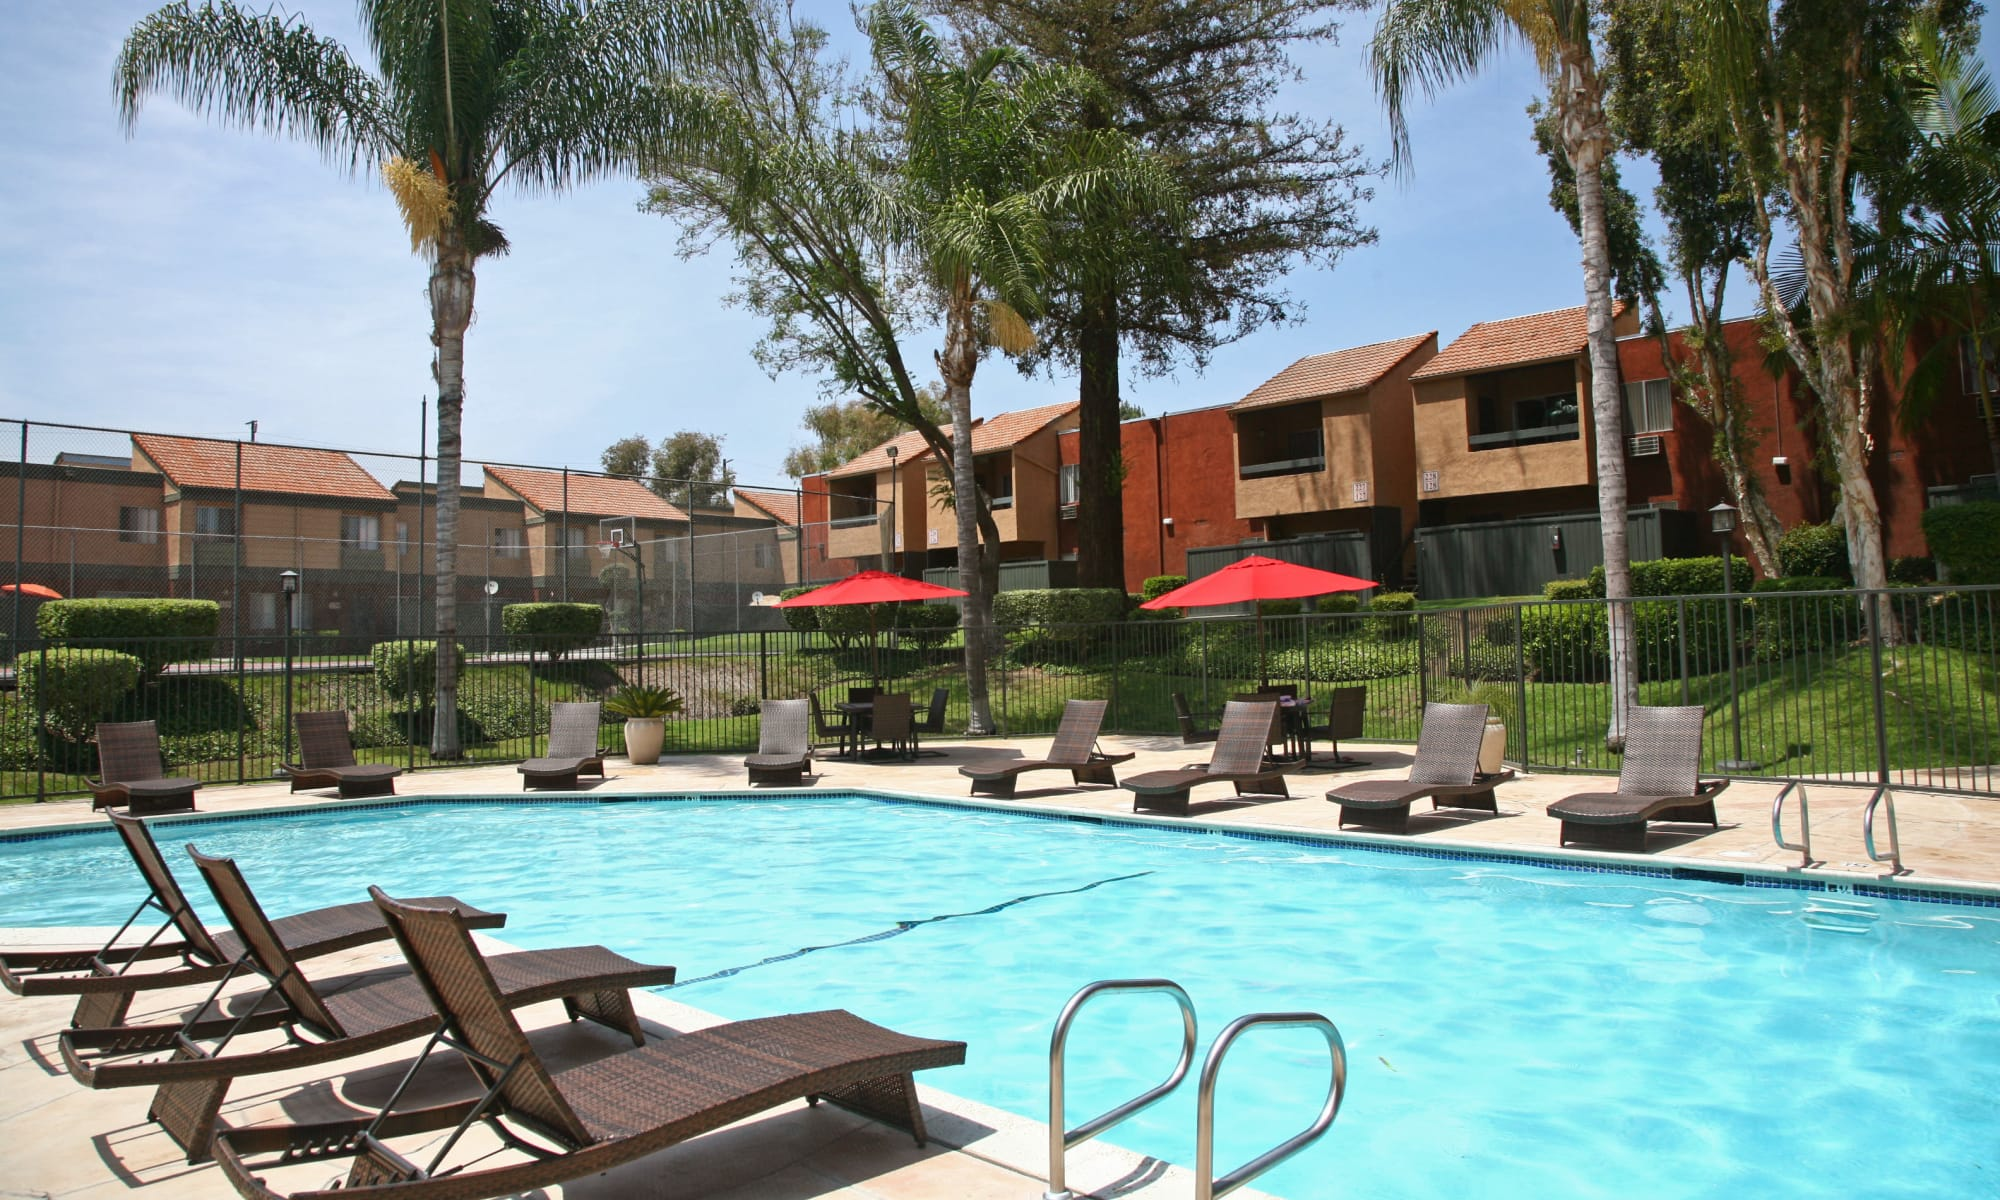 Apartments in West Covina, CA